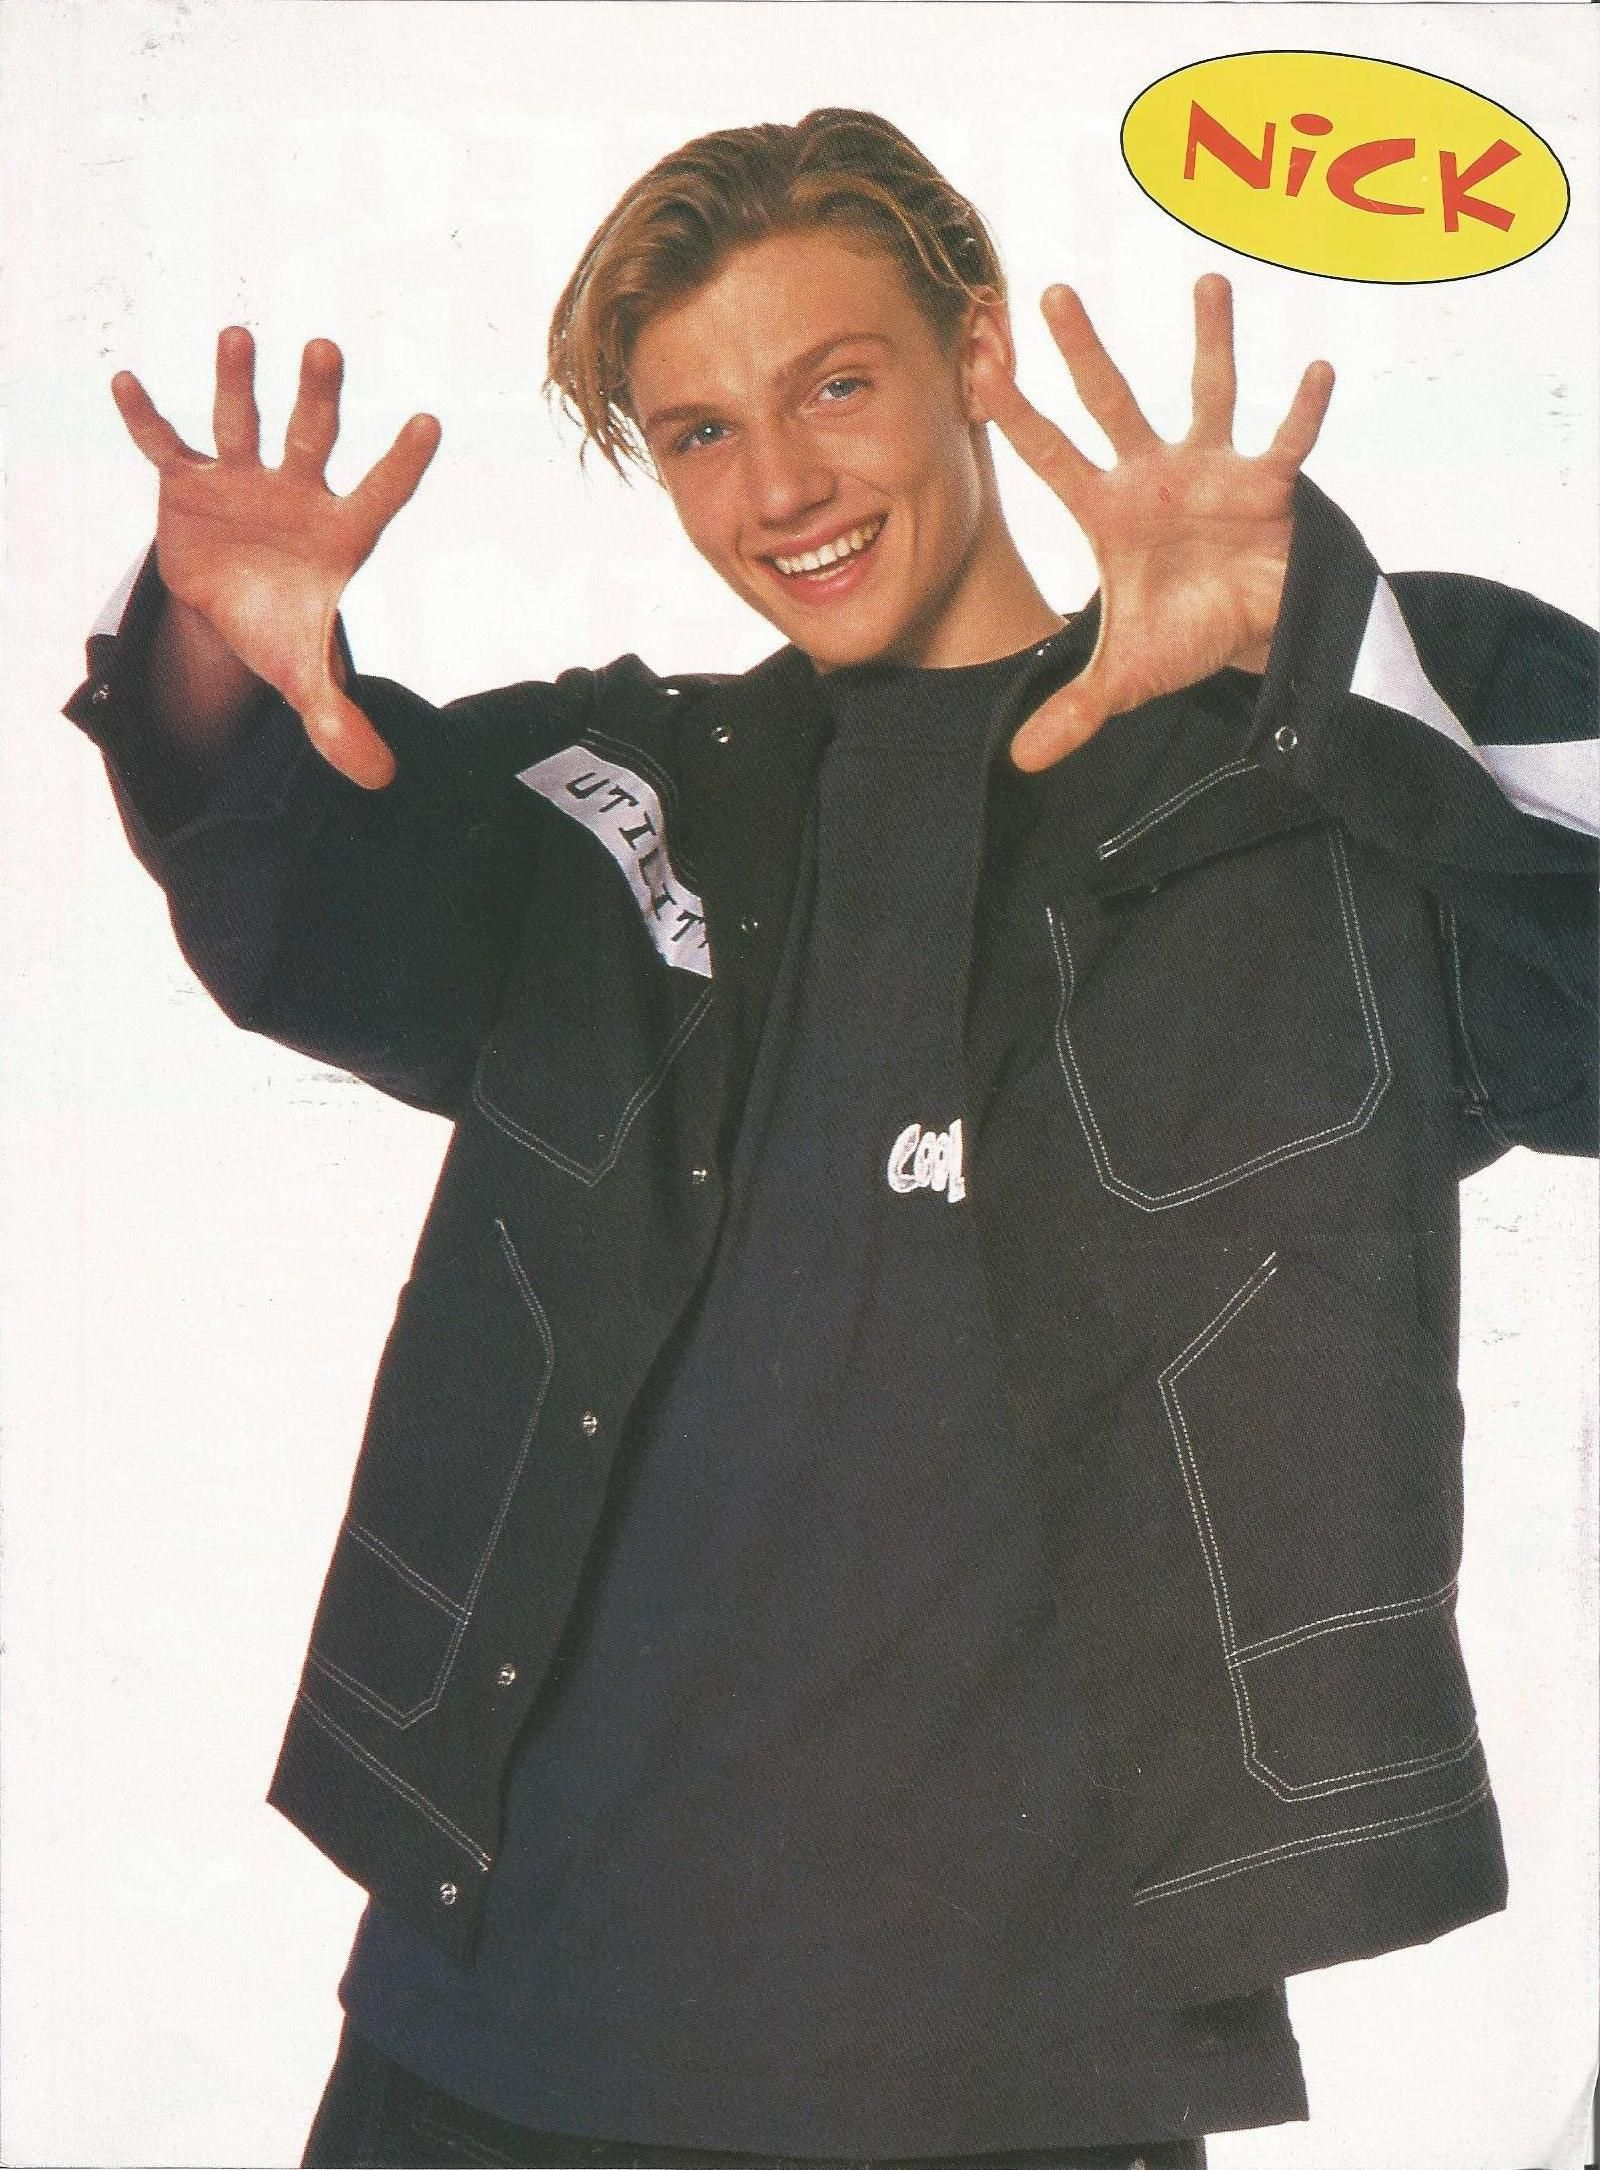 Think, that Nick carter sexy cover